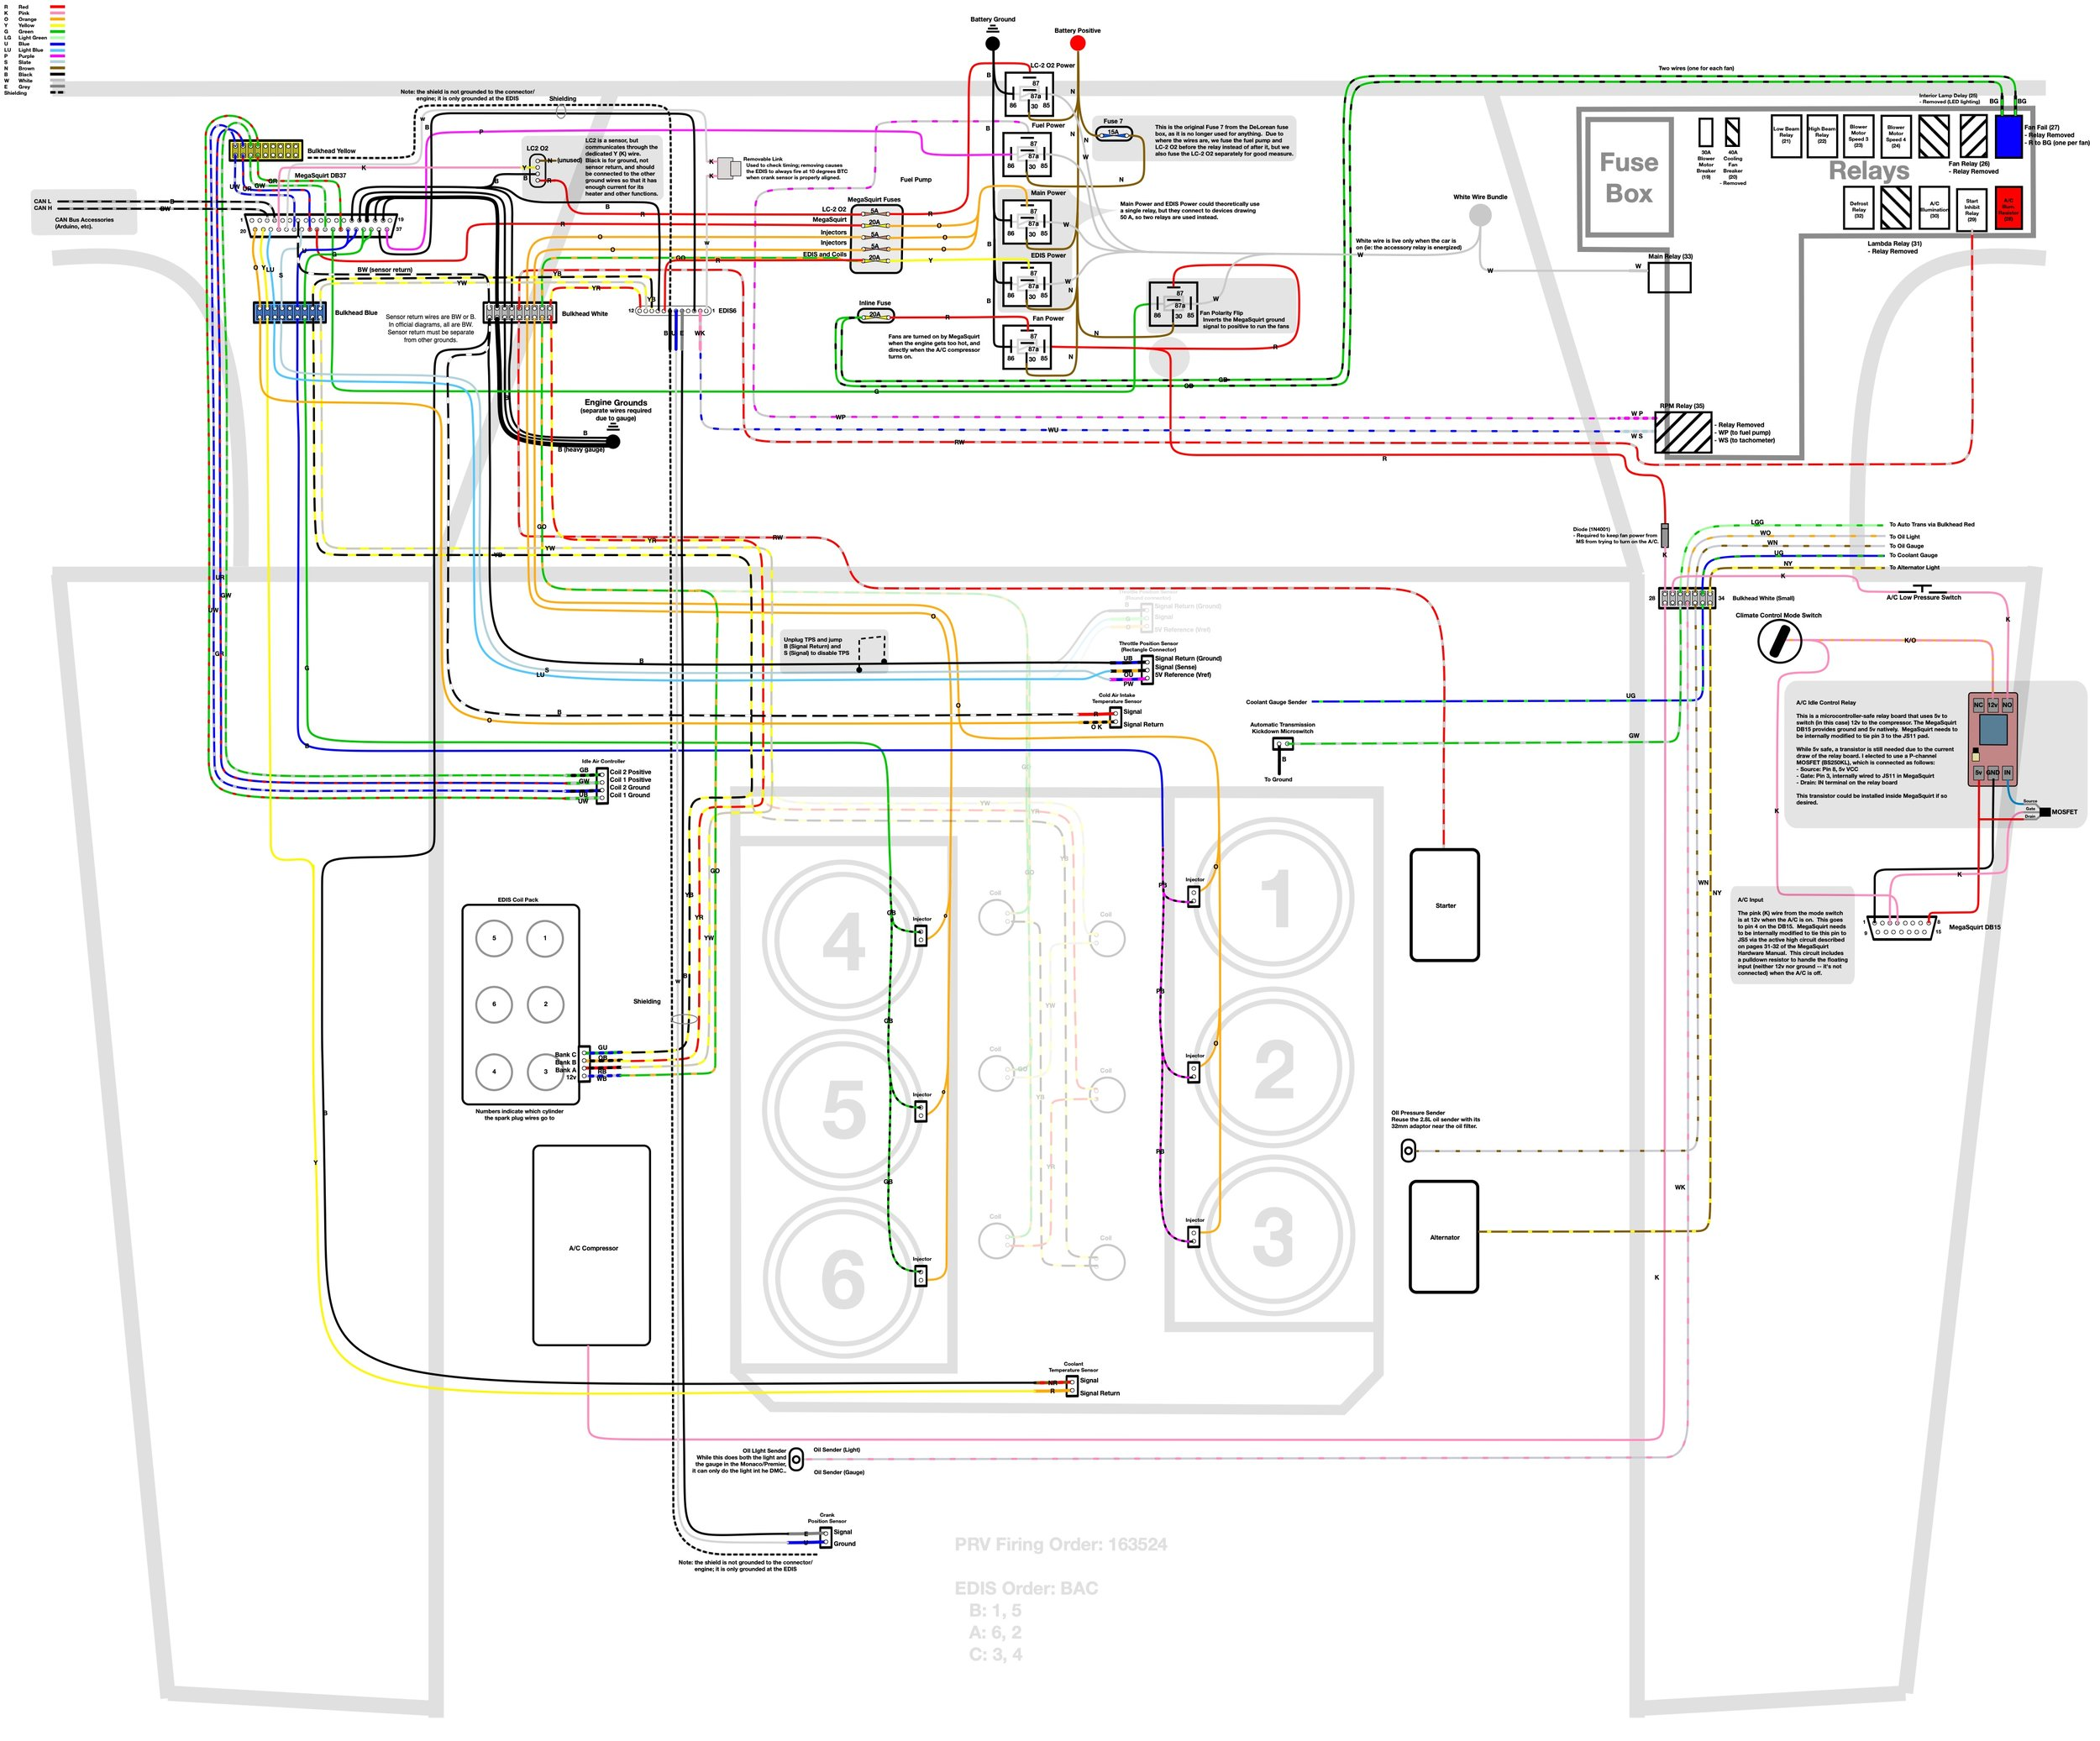 edis megasquirt wiring diagram wiring librarywiring, installing the new harness and fuel injector refurbishing